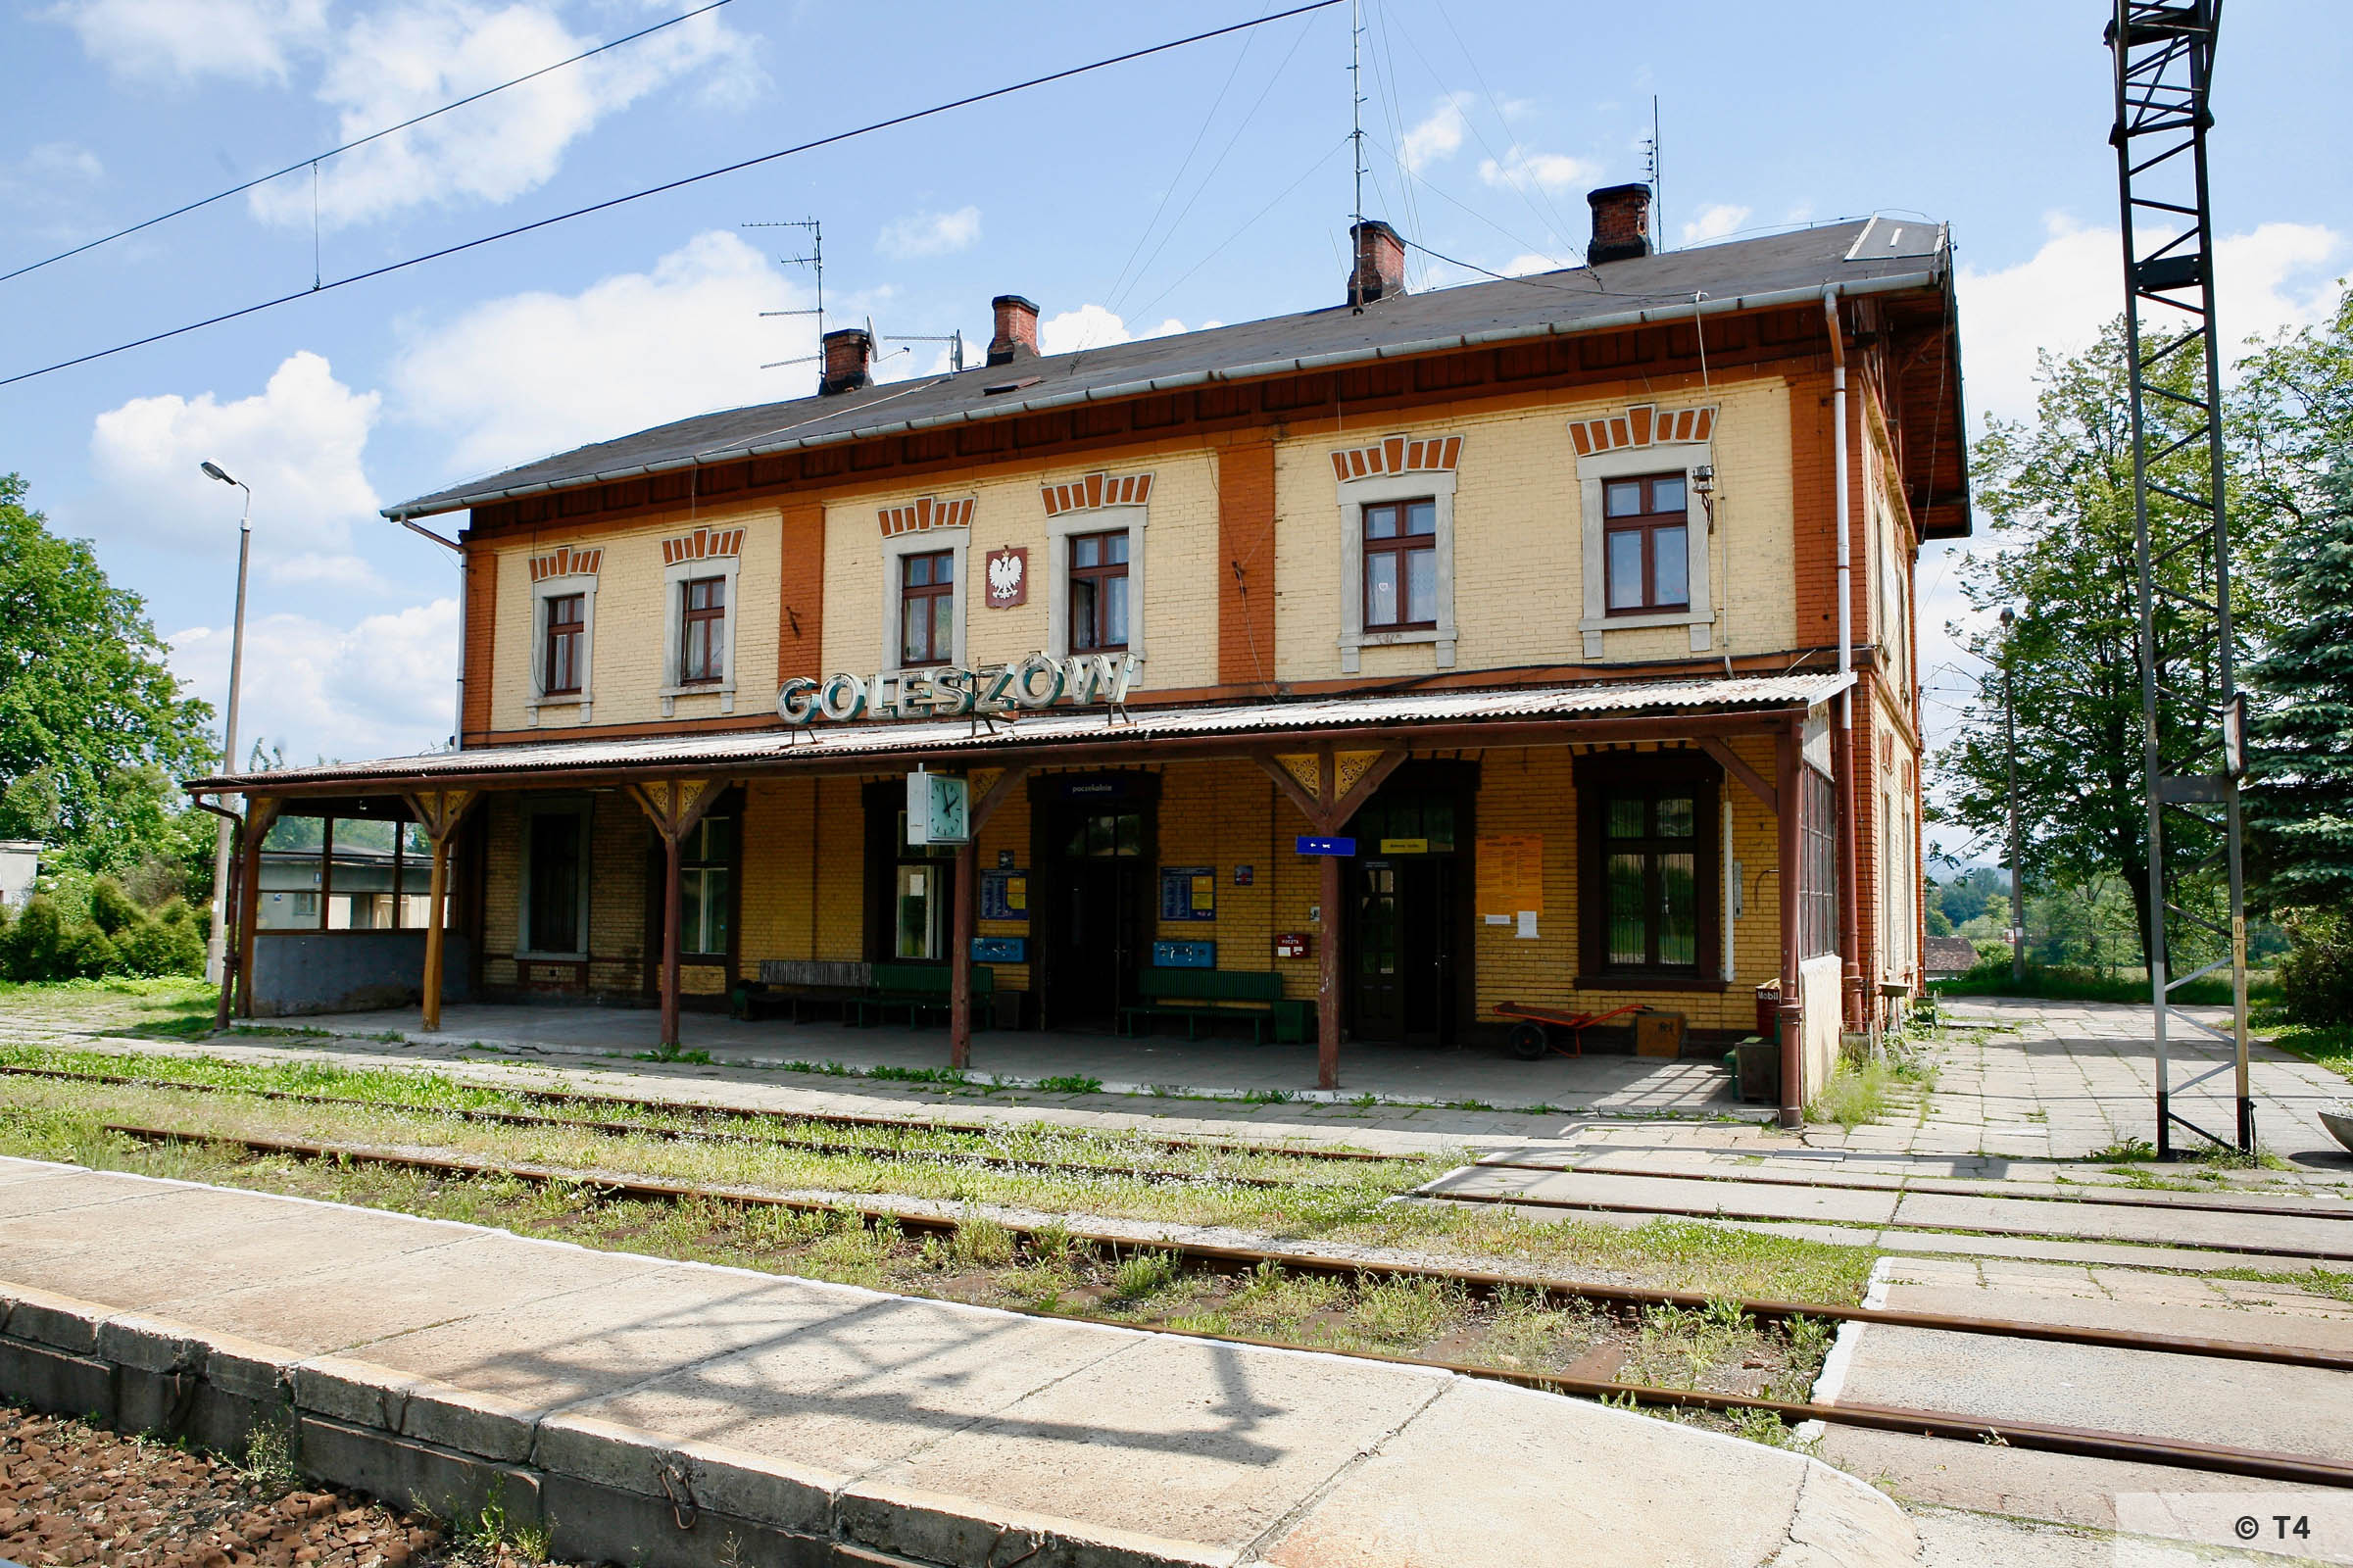 Goleszow train station 2006 T4 6647